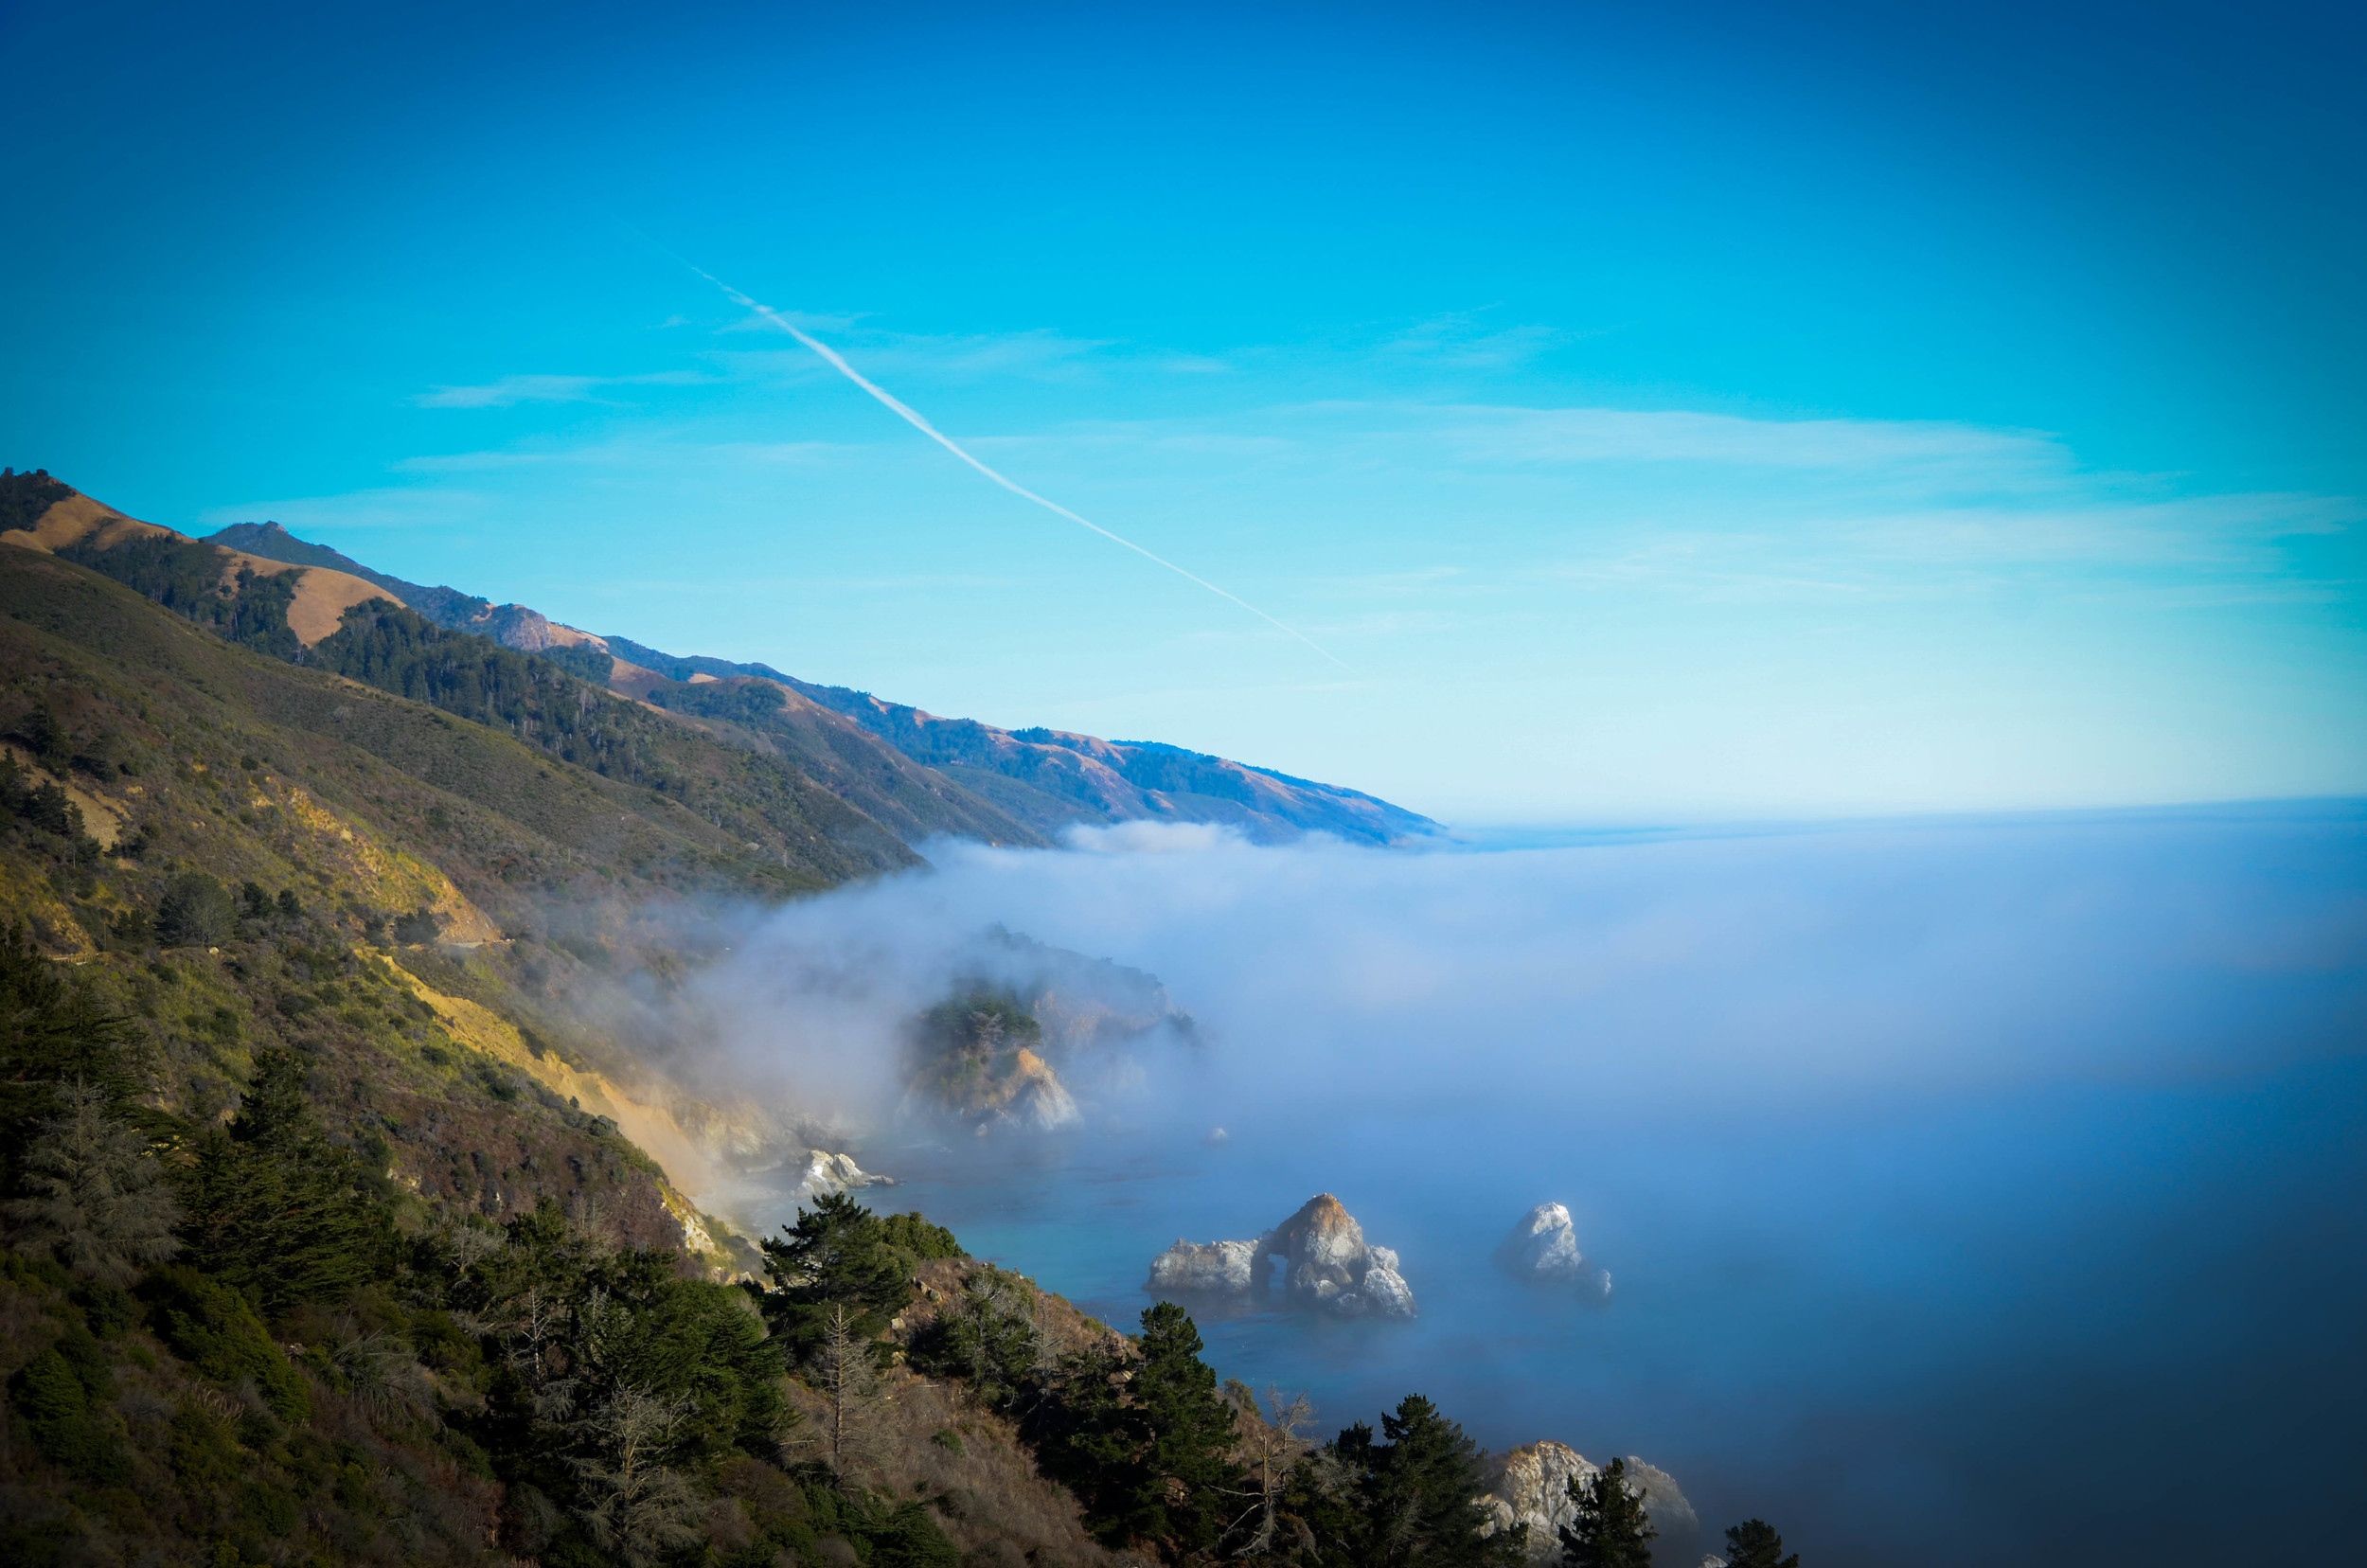 Half an hour after we got to the area, a huge fog rolled in. Timing was everything on this trip.